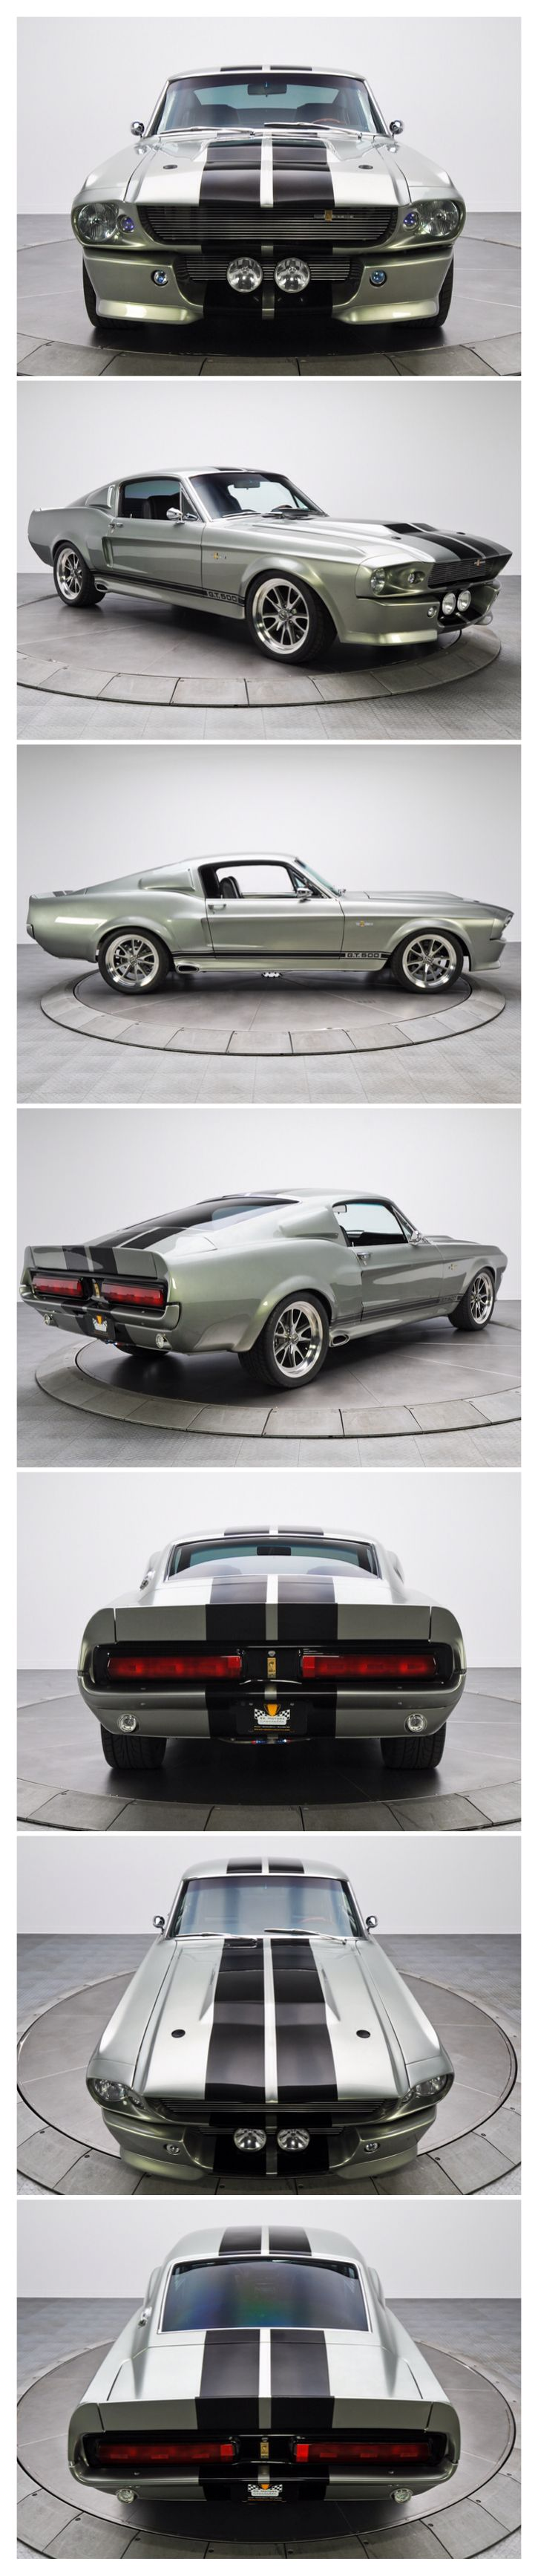 Best 25 2008 ford mustang ideas only on pinterest 1967 shelby gt500 gt 500 and shelby 500